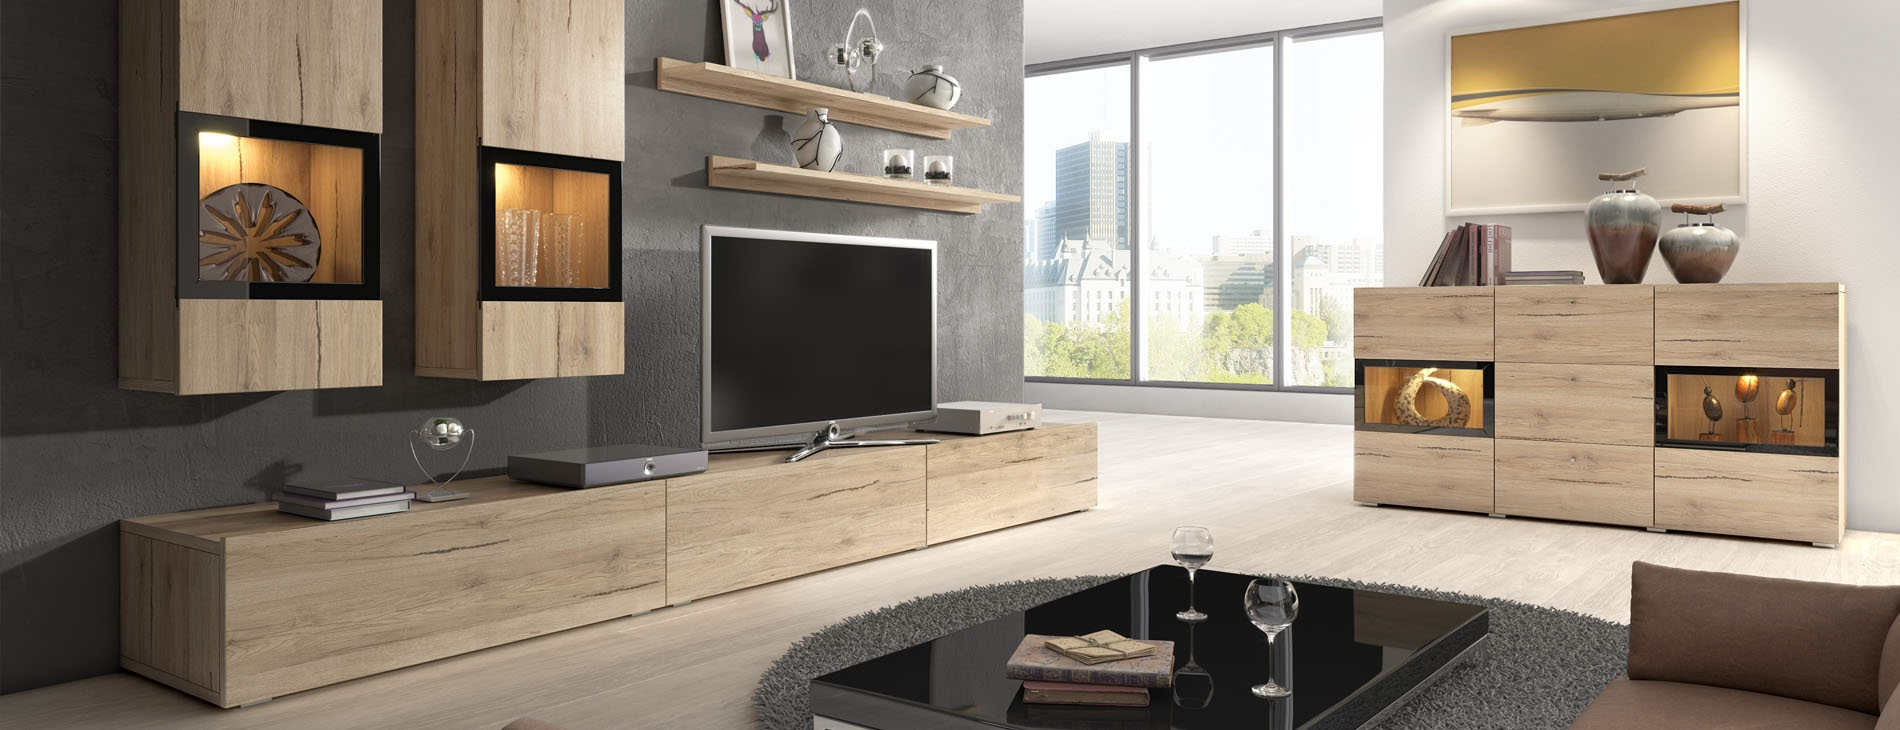 https://domadeco.co.uk/wall-unit-baros.html